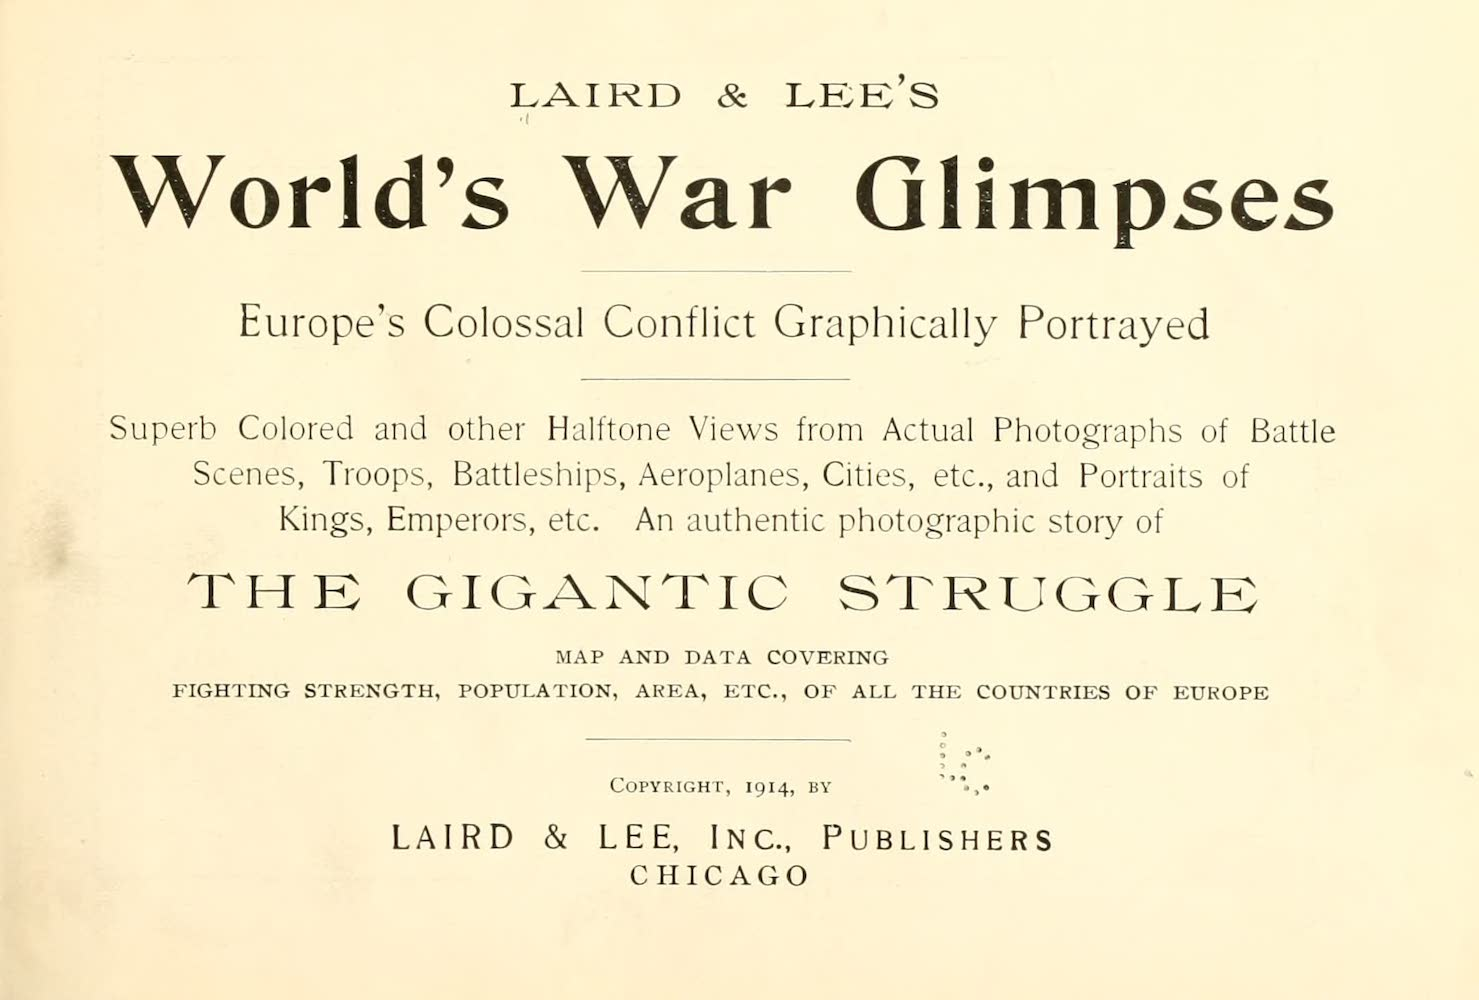 Laird & Lee's World's War Glimpses - Title Page (1914)